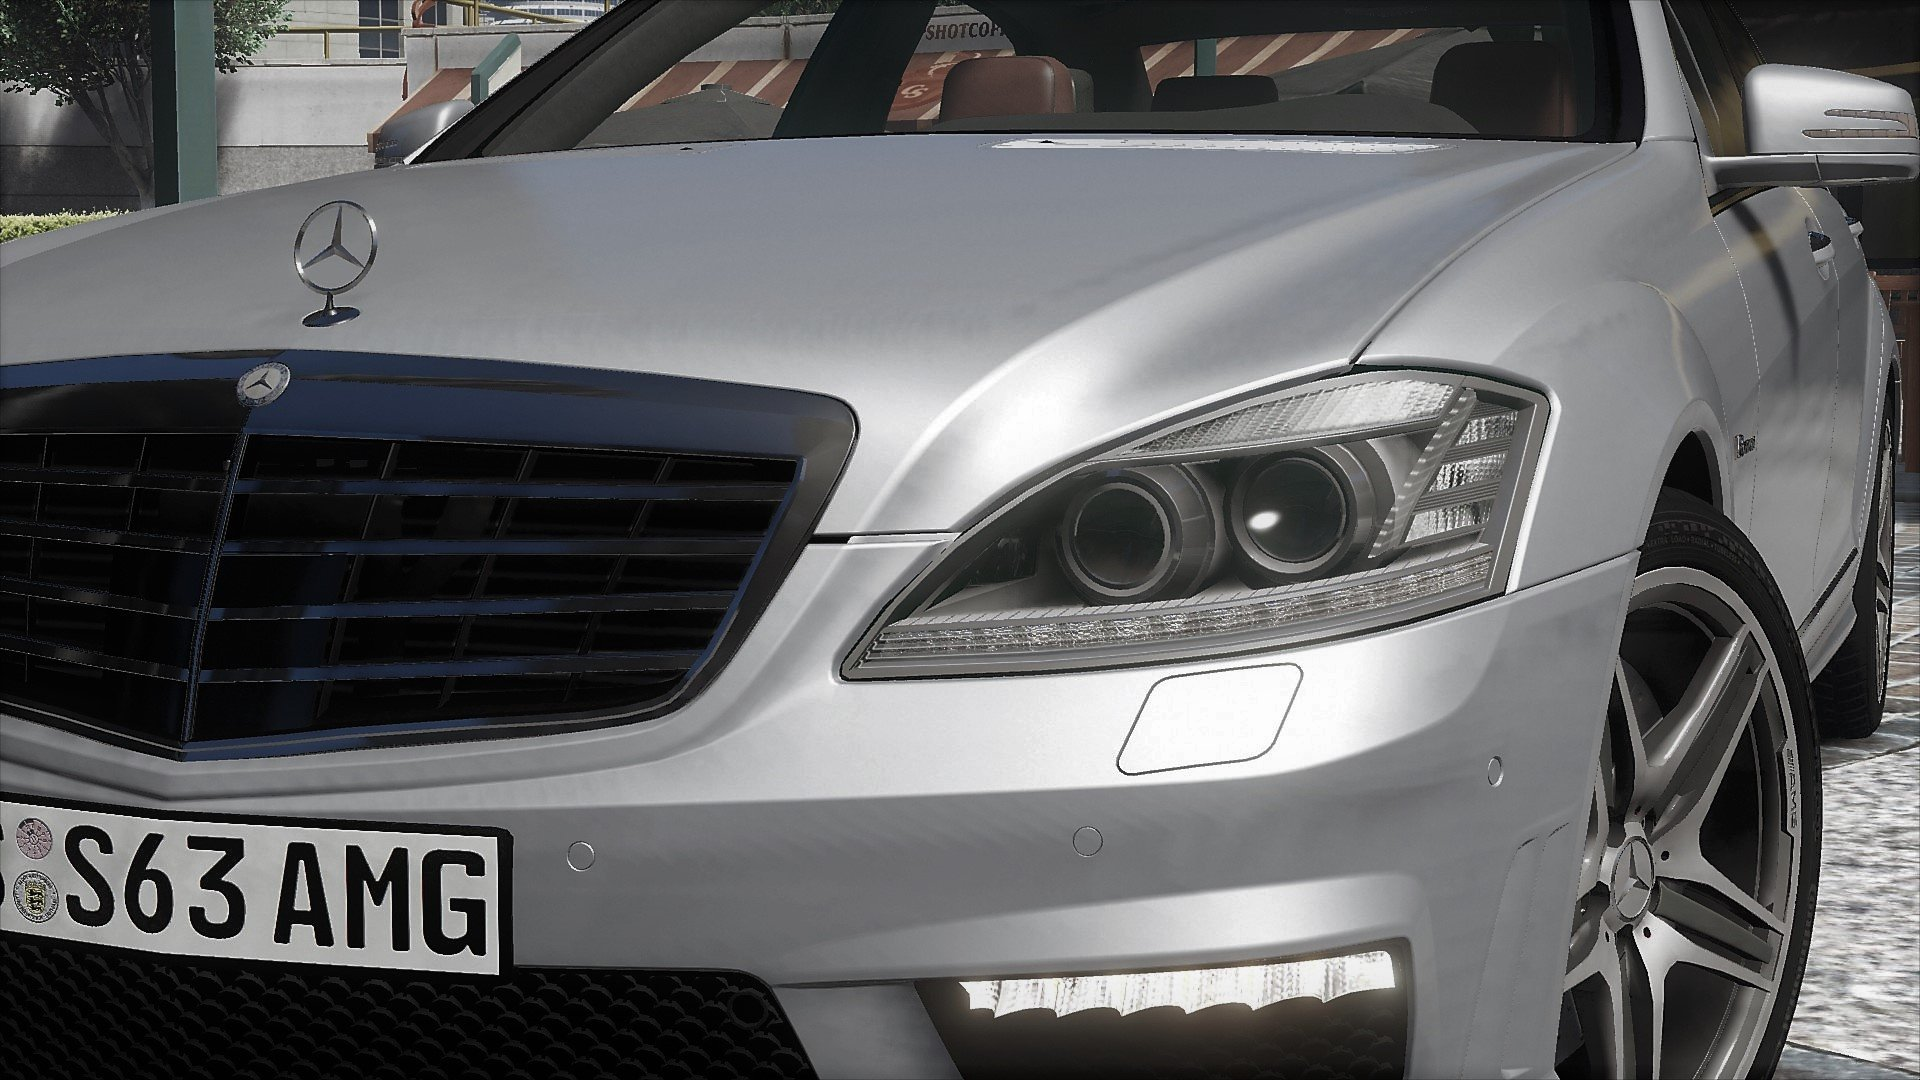 2012 mercedes benz s63 amg w221 add on tuning gta5. Black Bedroom Furniture Sets. Home Design Ideas